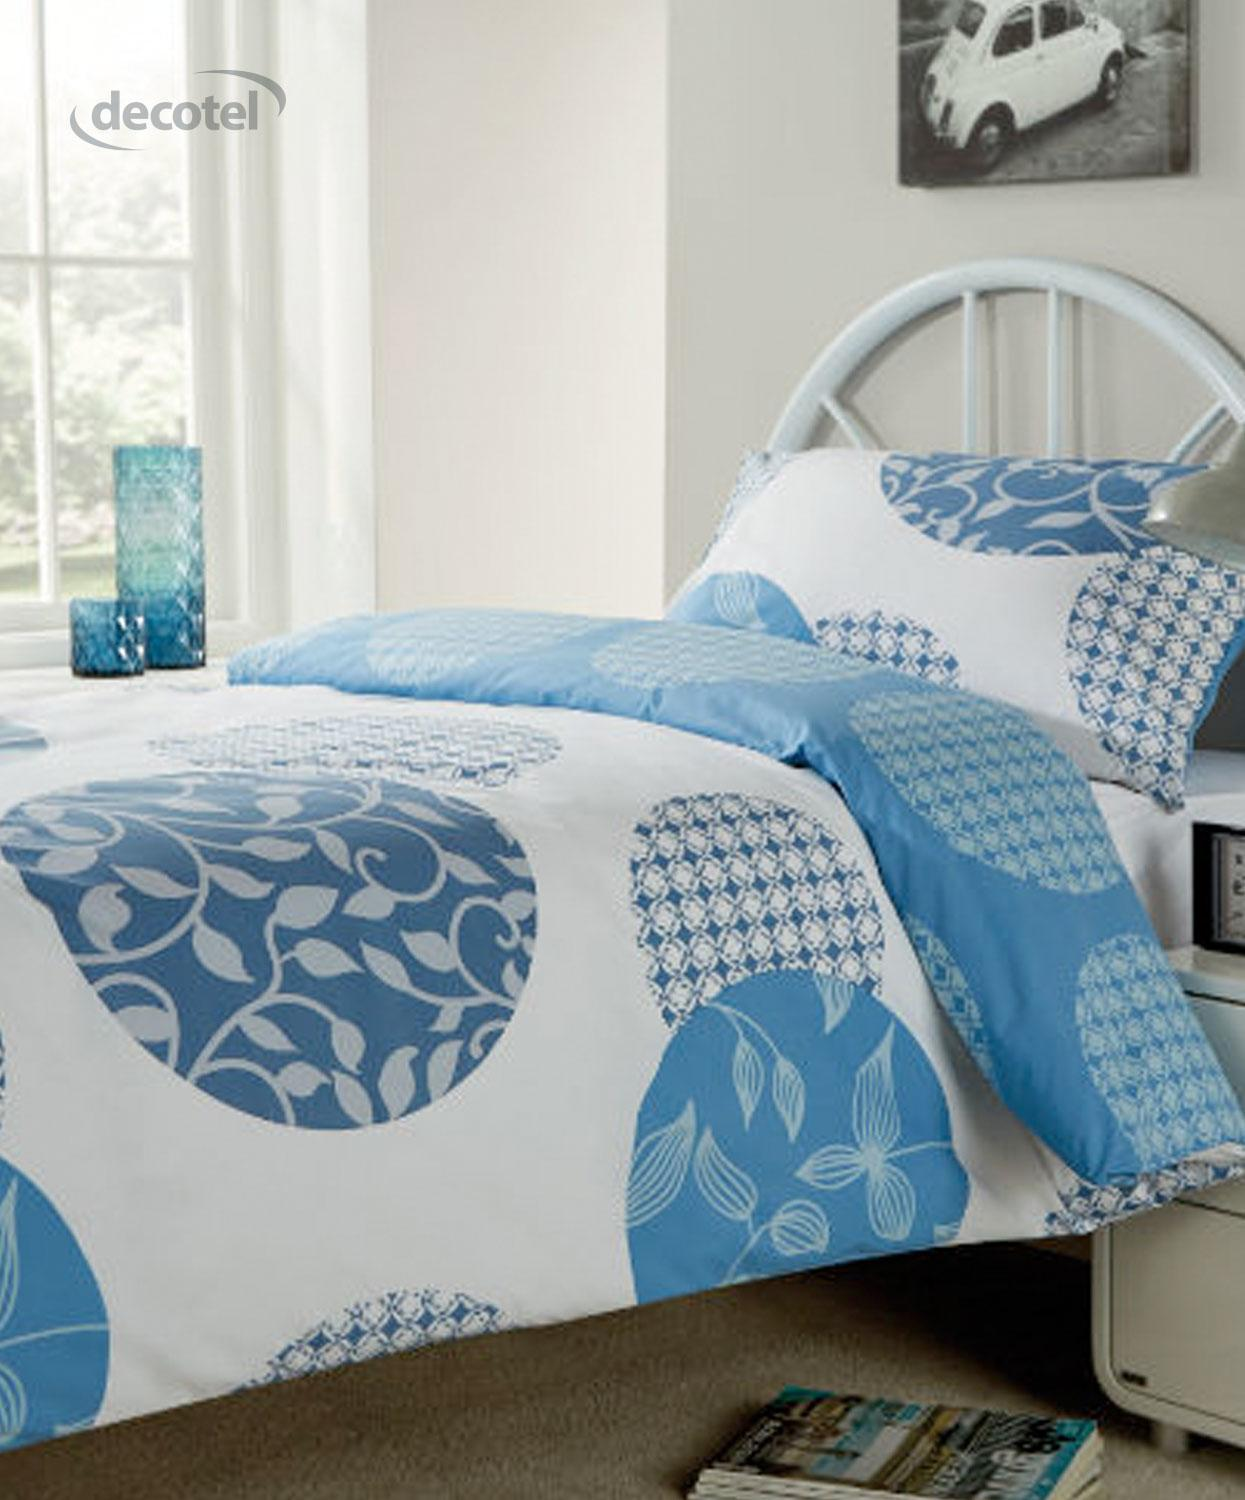 Woodland Duvet Cover in blue